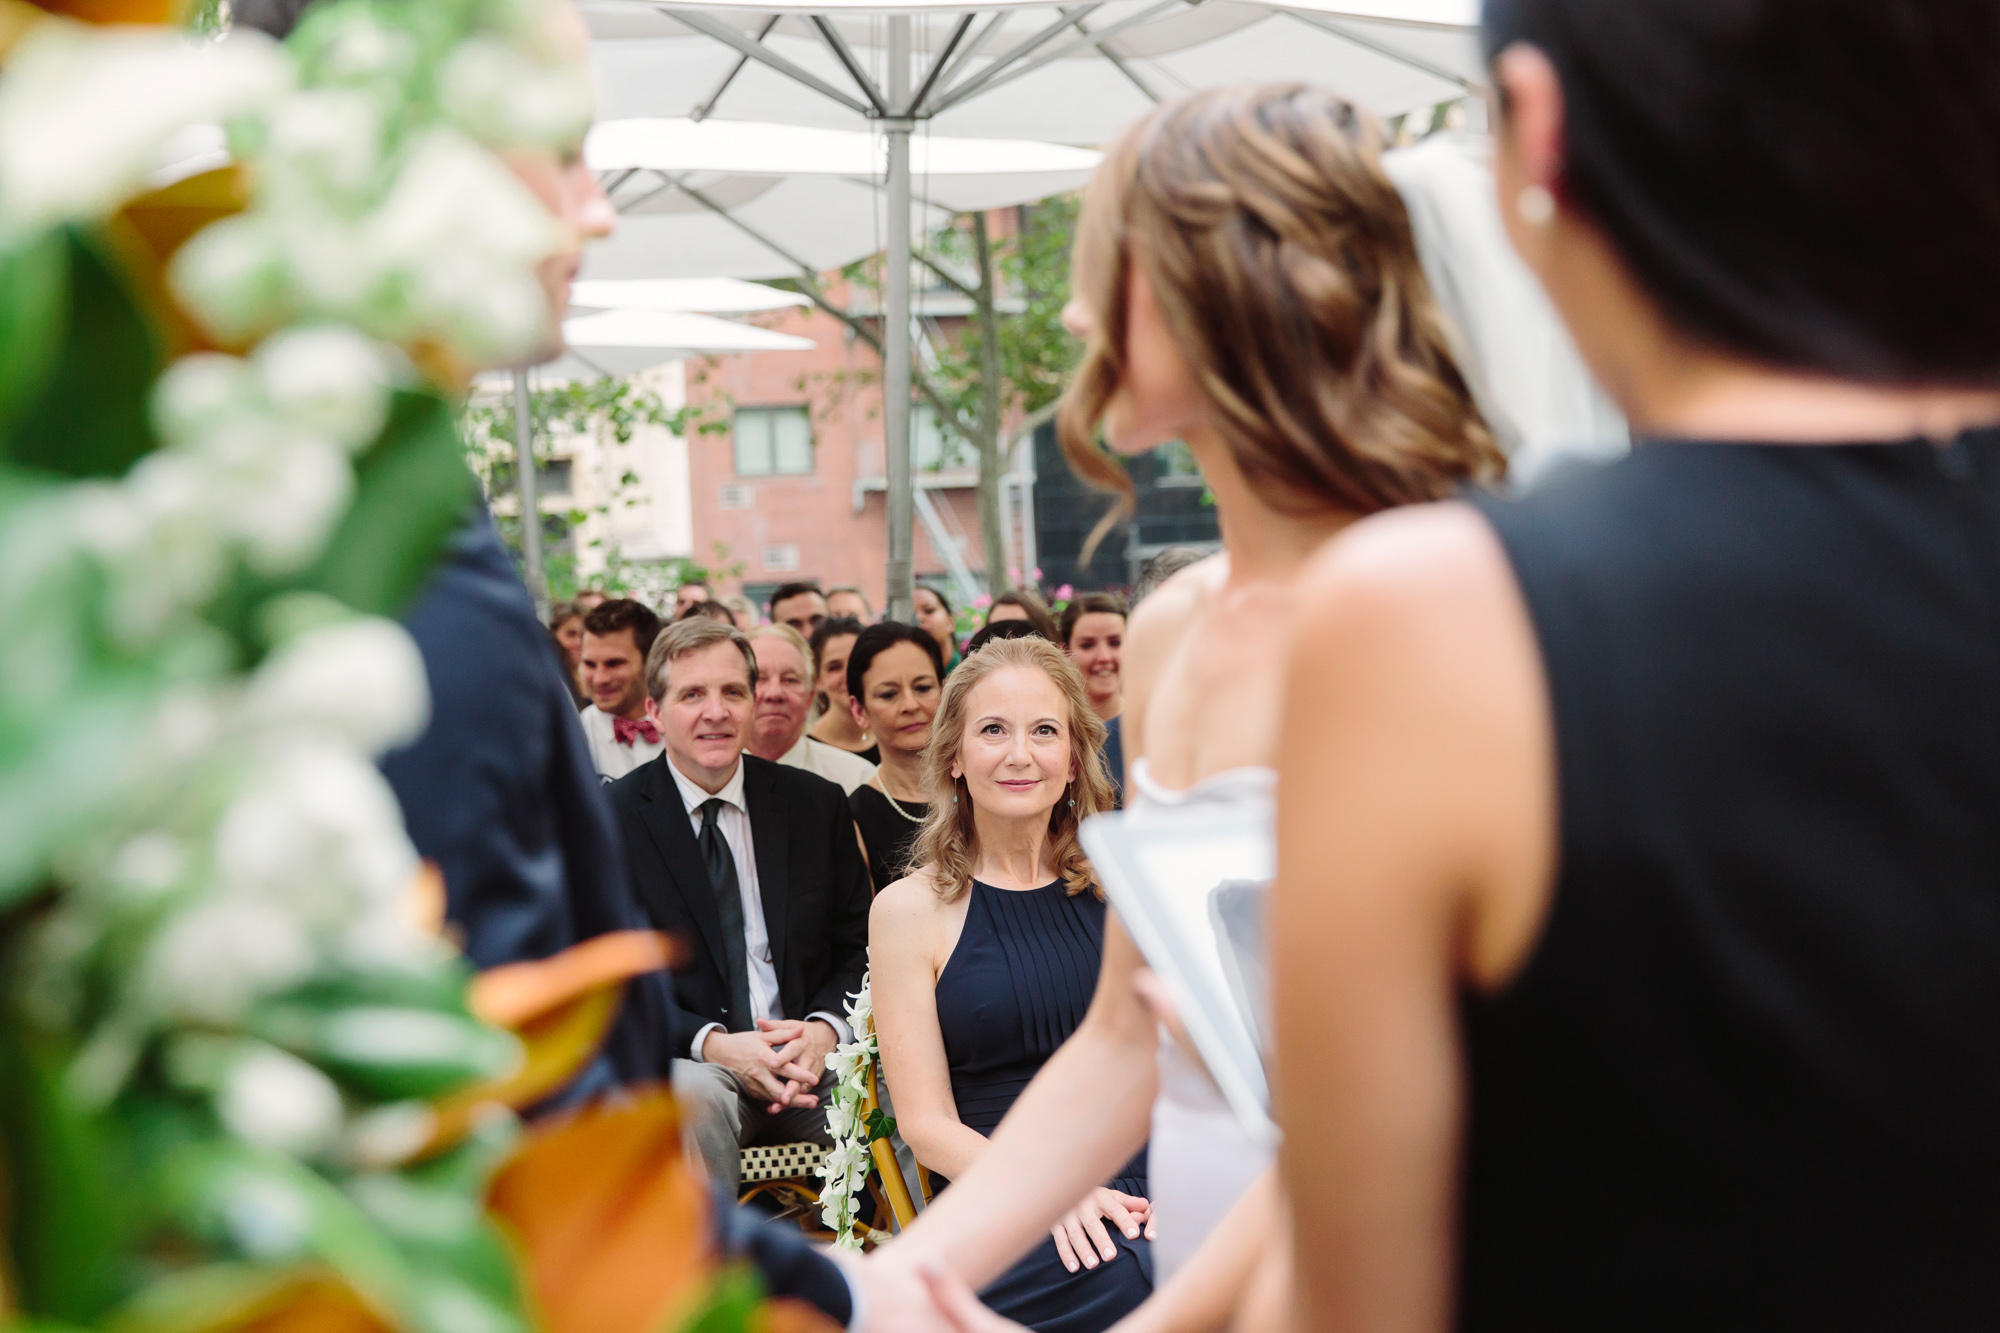 45_Ali_Lloyd_Bryant_Park_Grill_Wedding_NYC_Tanya_Salazar_Photography_449.jpg